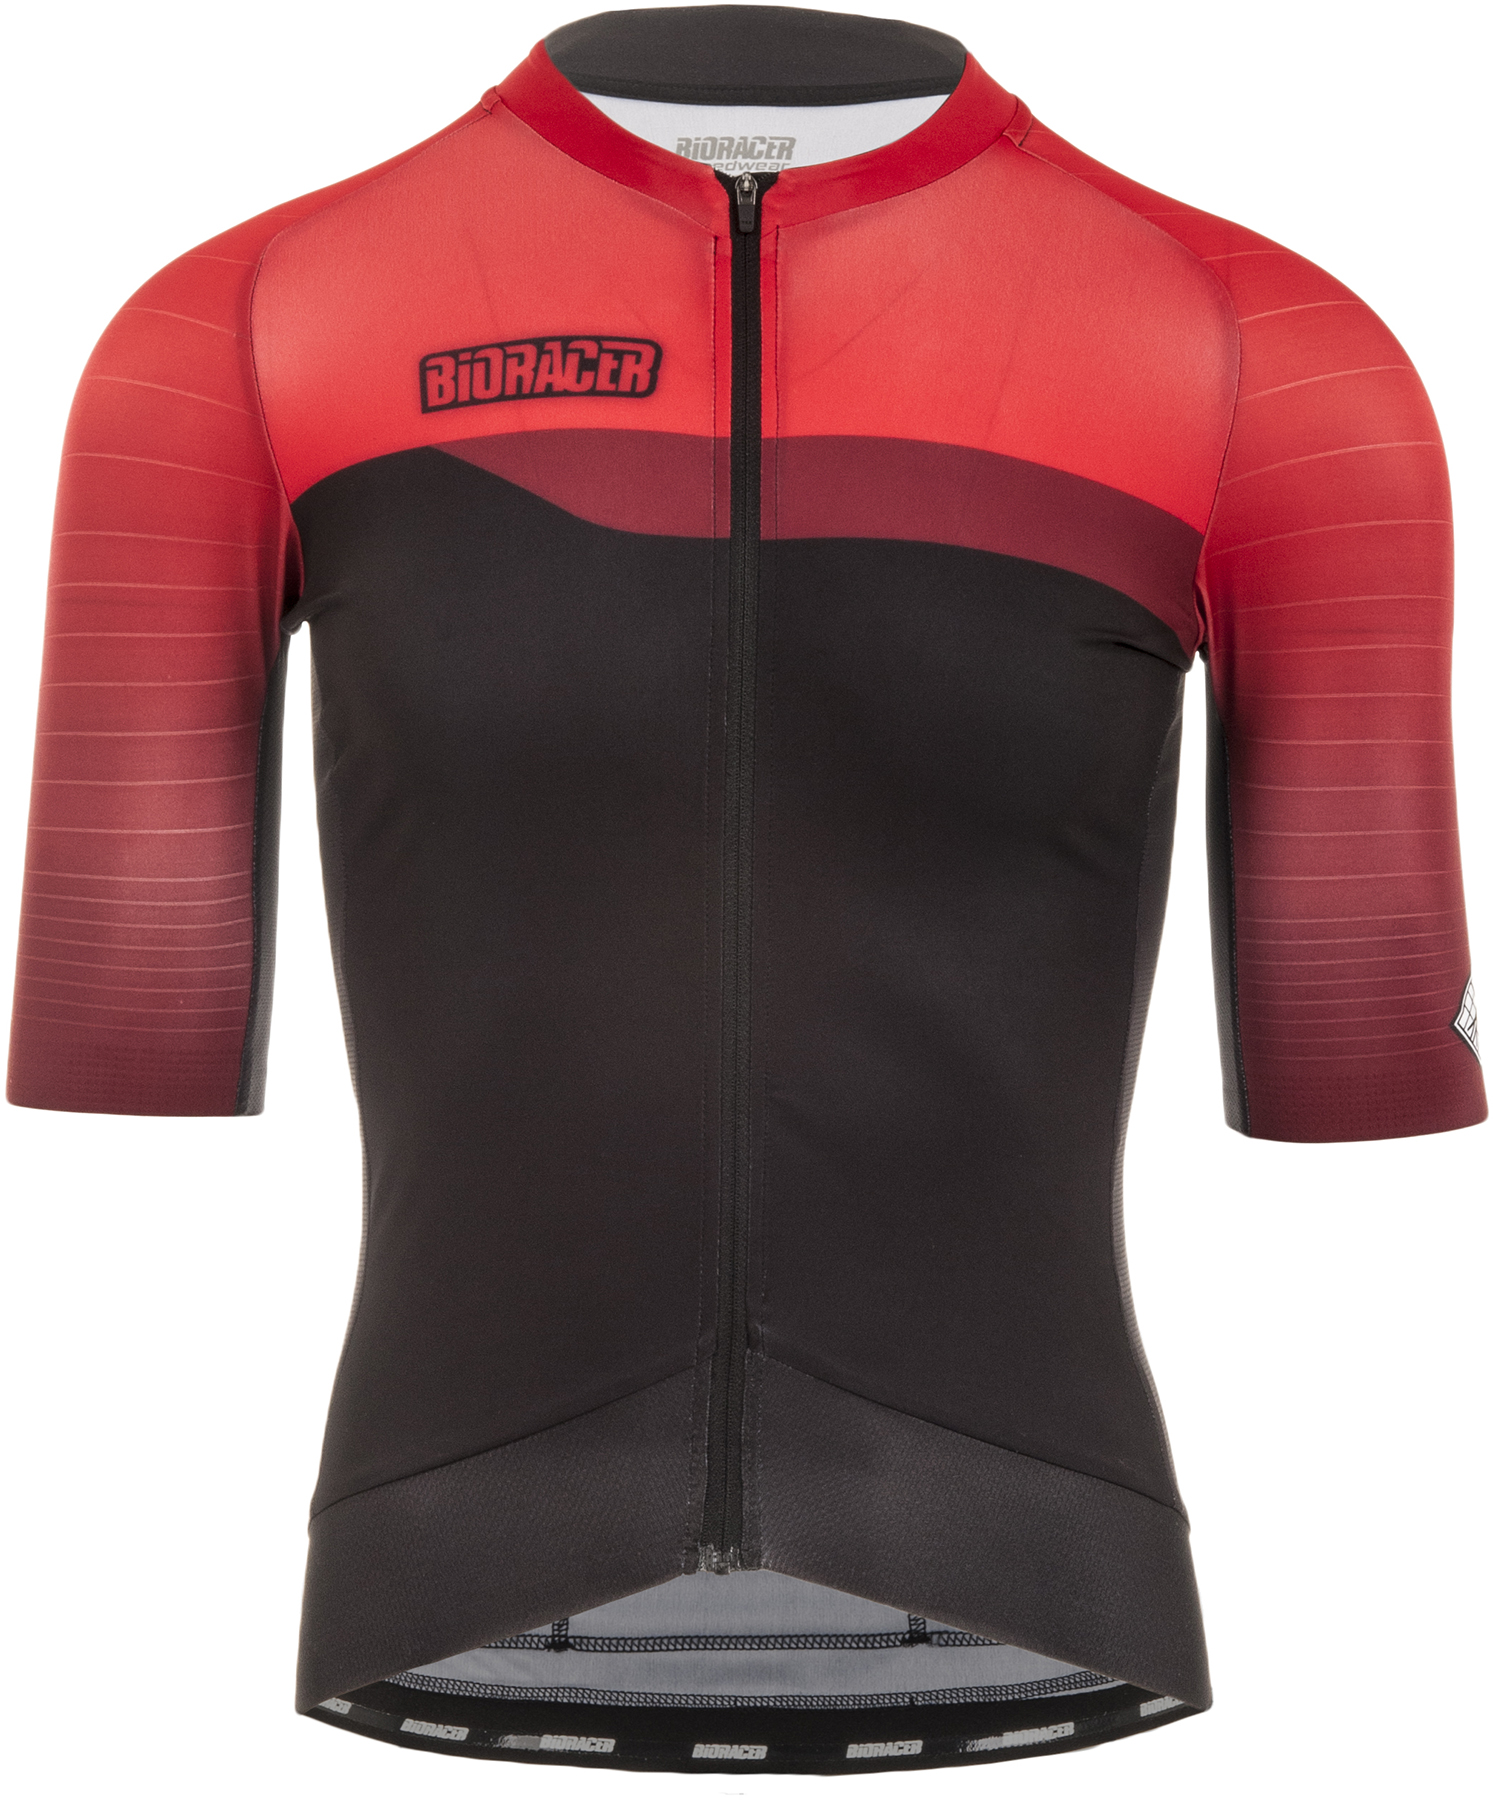 Bioracer Epic shirt | Jerseys